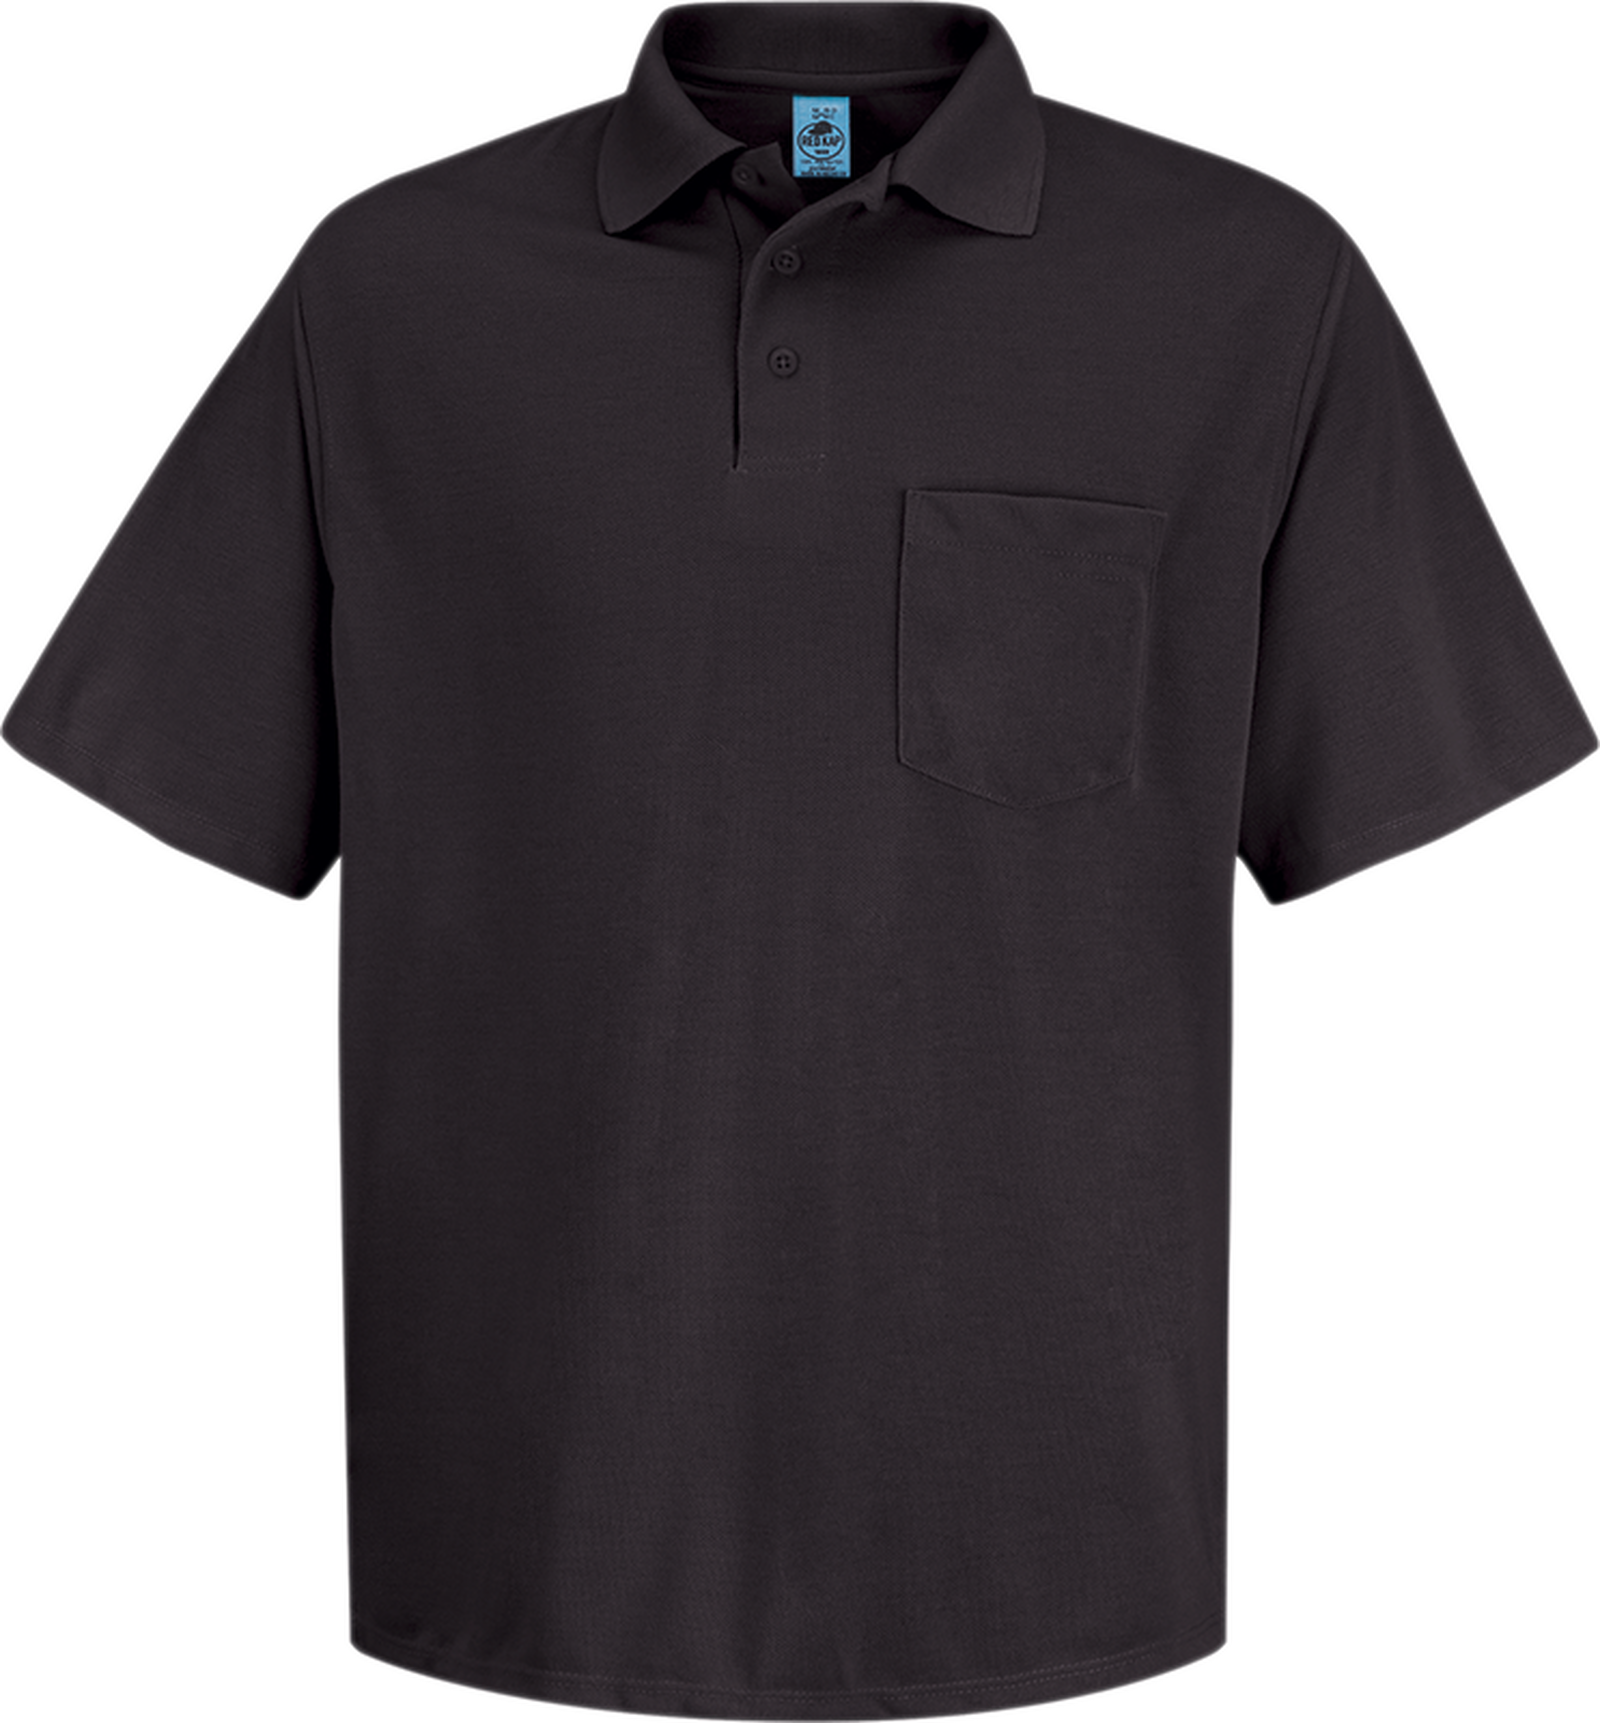 Men's Short Sleeve Spun Polyester Pocket Polo